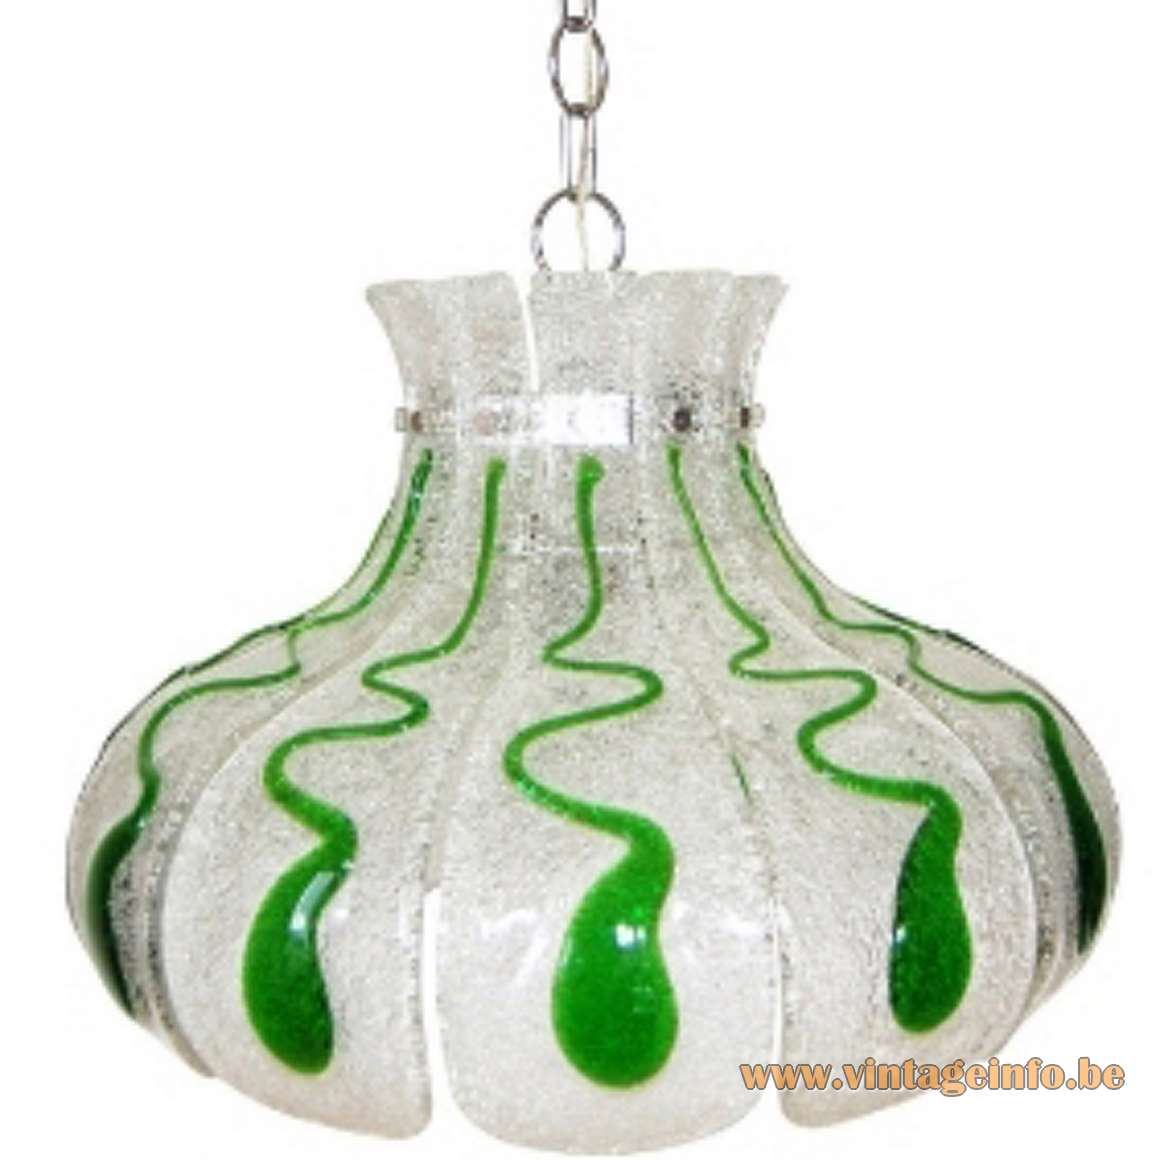 AV Mazzega Green Crystal Chandelier